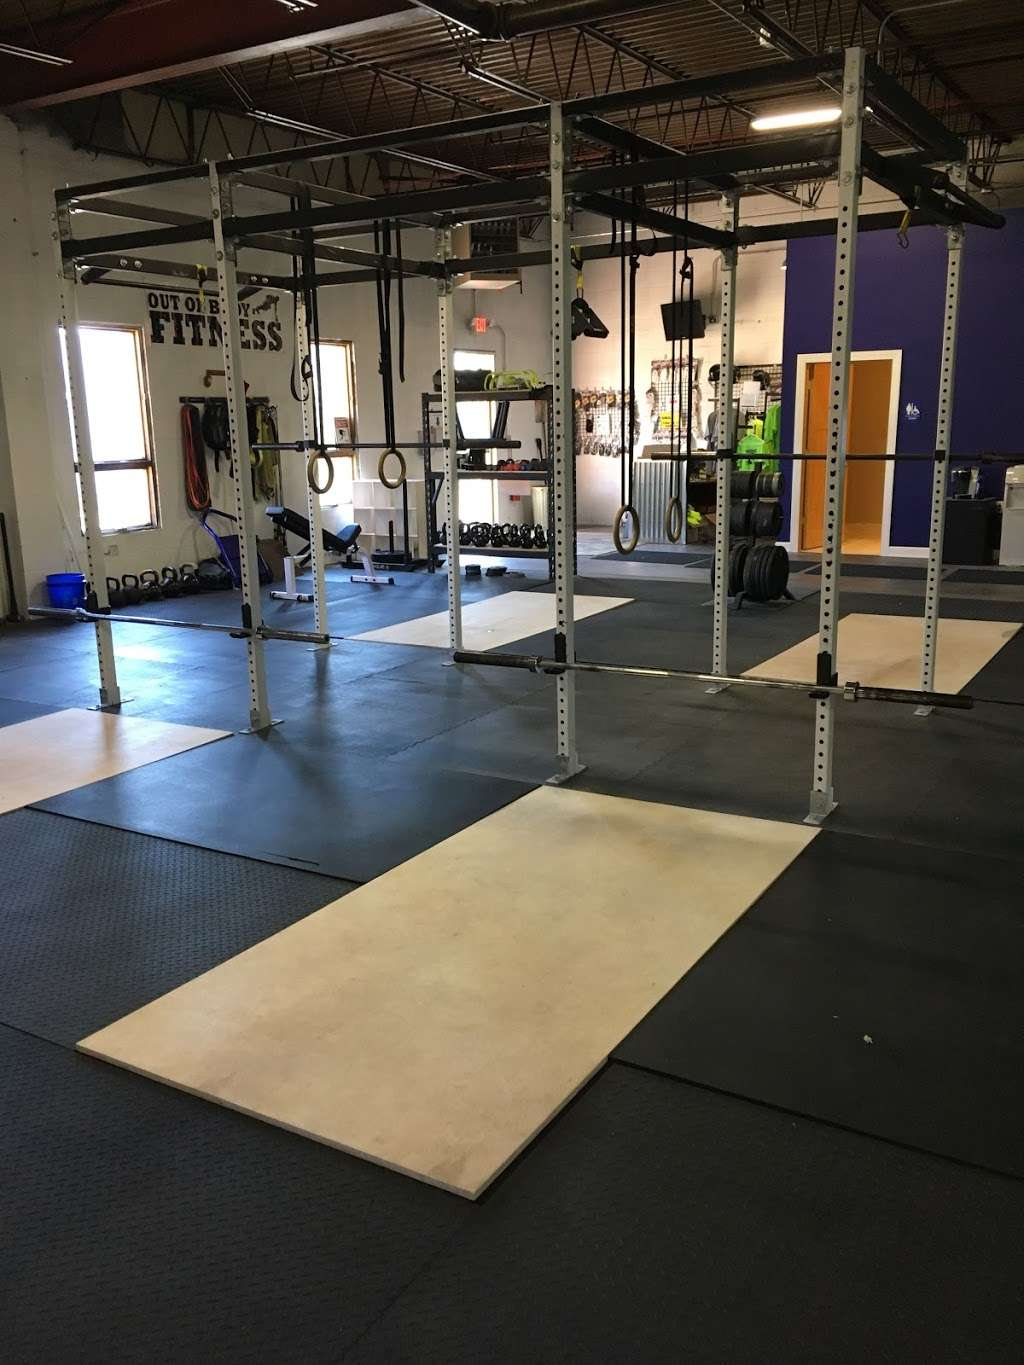 Out of Body Fitness - gym  | Photo 7 of 10 | Address: 303 N 4th St # B, St. Charles, IL 60174, USA | Phone: (630) 440-7993